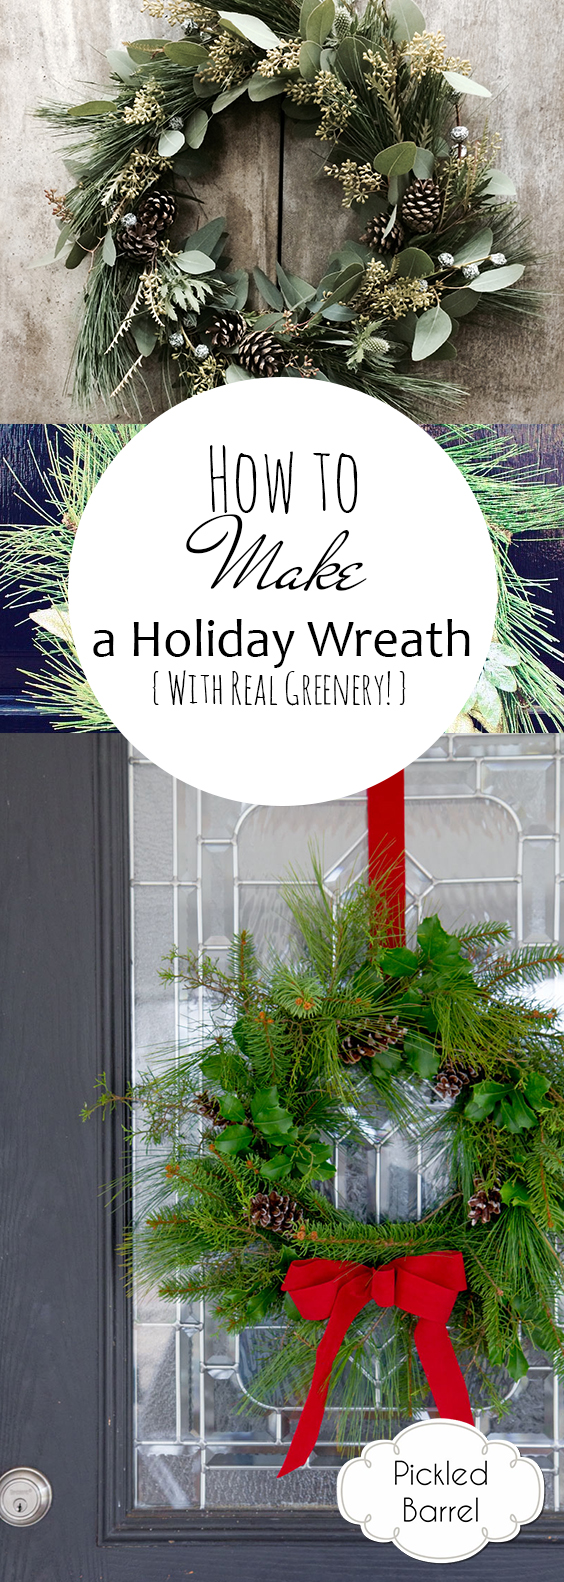 How to Make a Holiday Wreath {With Real Greenery!}| Holiday Wreath, DIY Holiday, Porch Decor, DIY Holiday Wreath, Christmas, Christmas Decor, Holiday Home #Christmas #Holiday #DIYHoliday